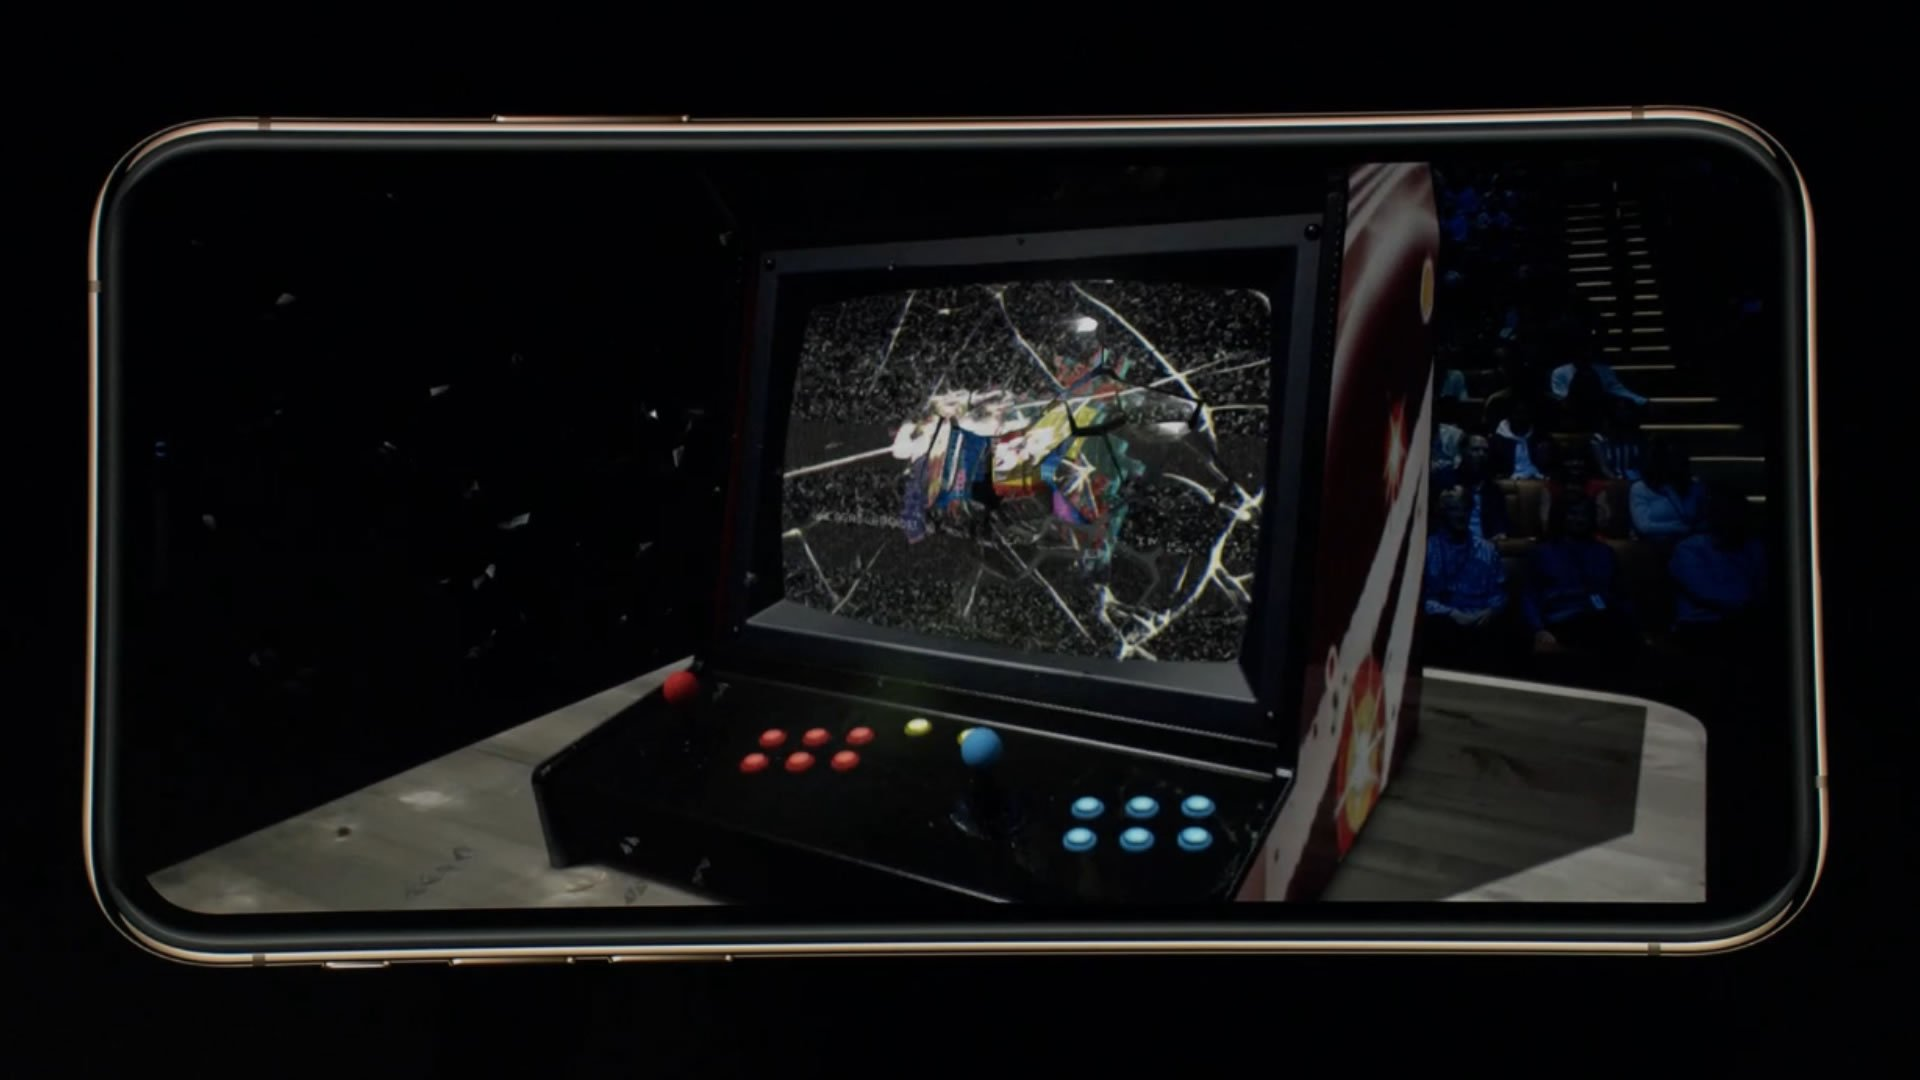 Multiplayer AR Galaga demo shown at Apple Special Event by Directive